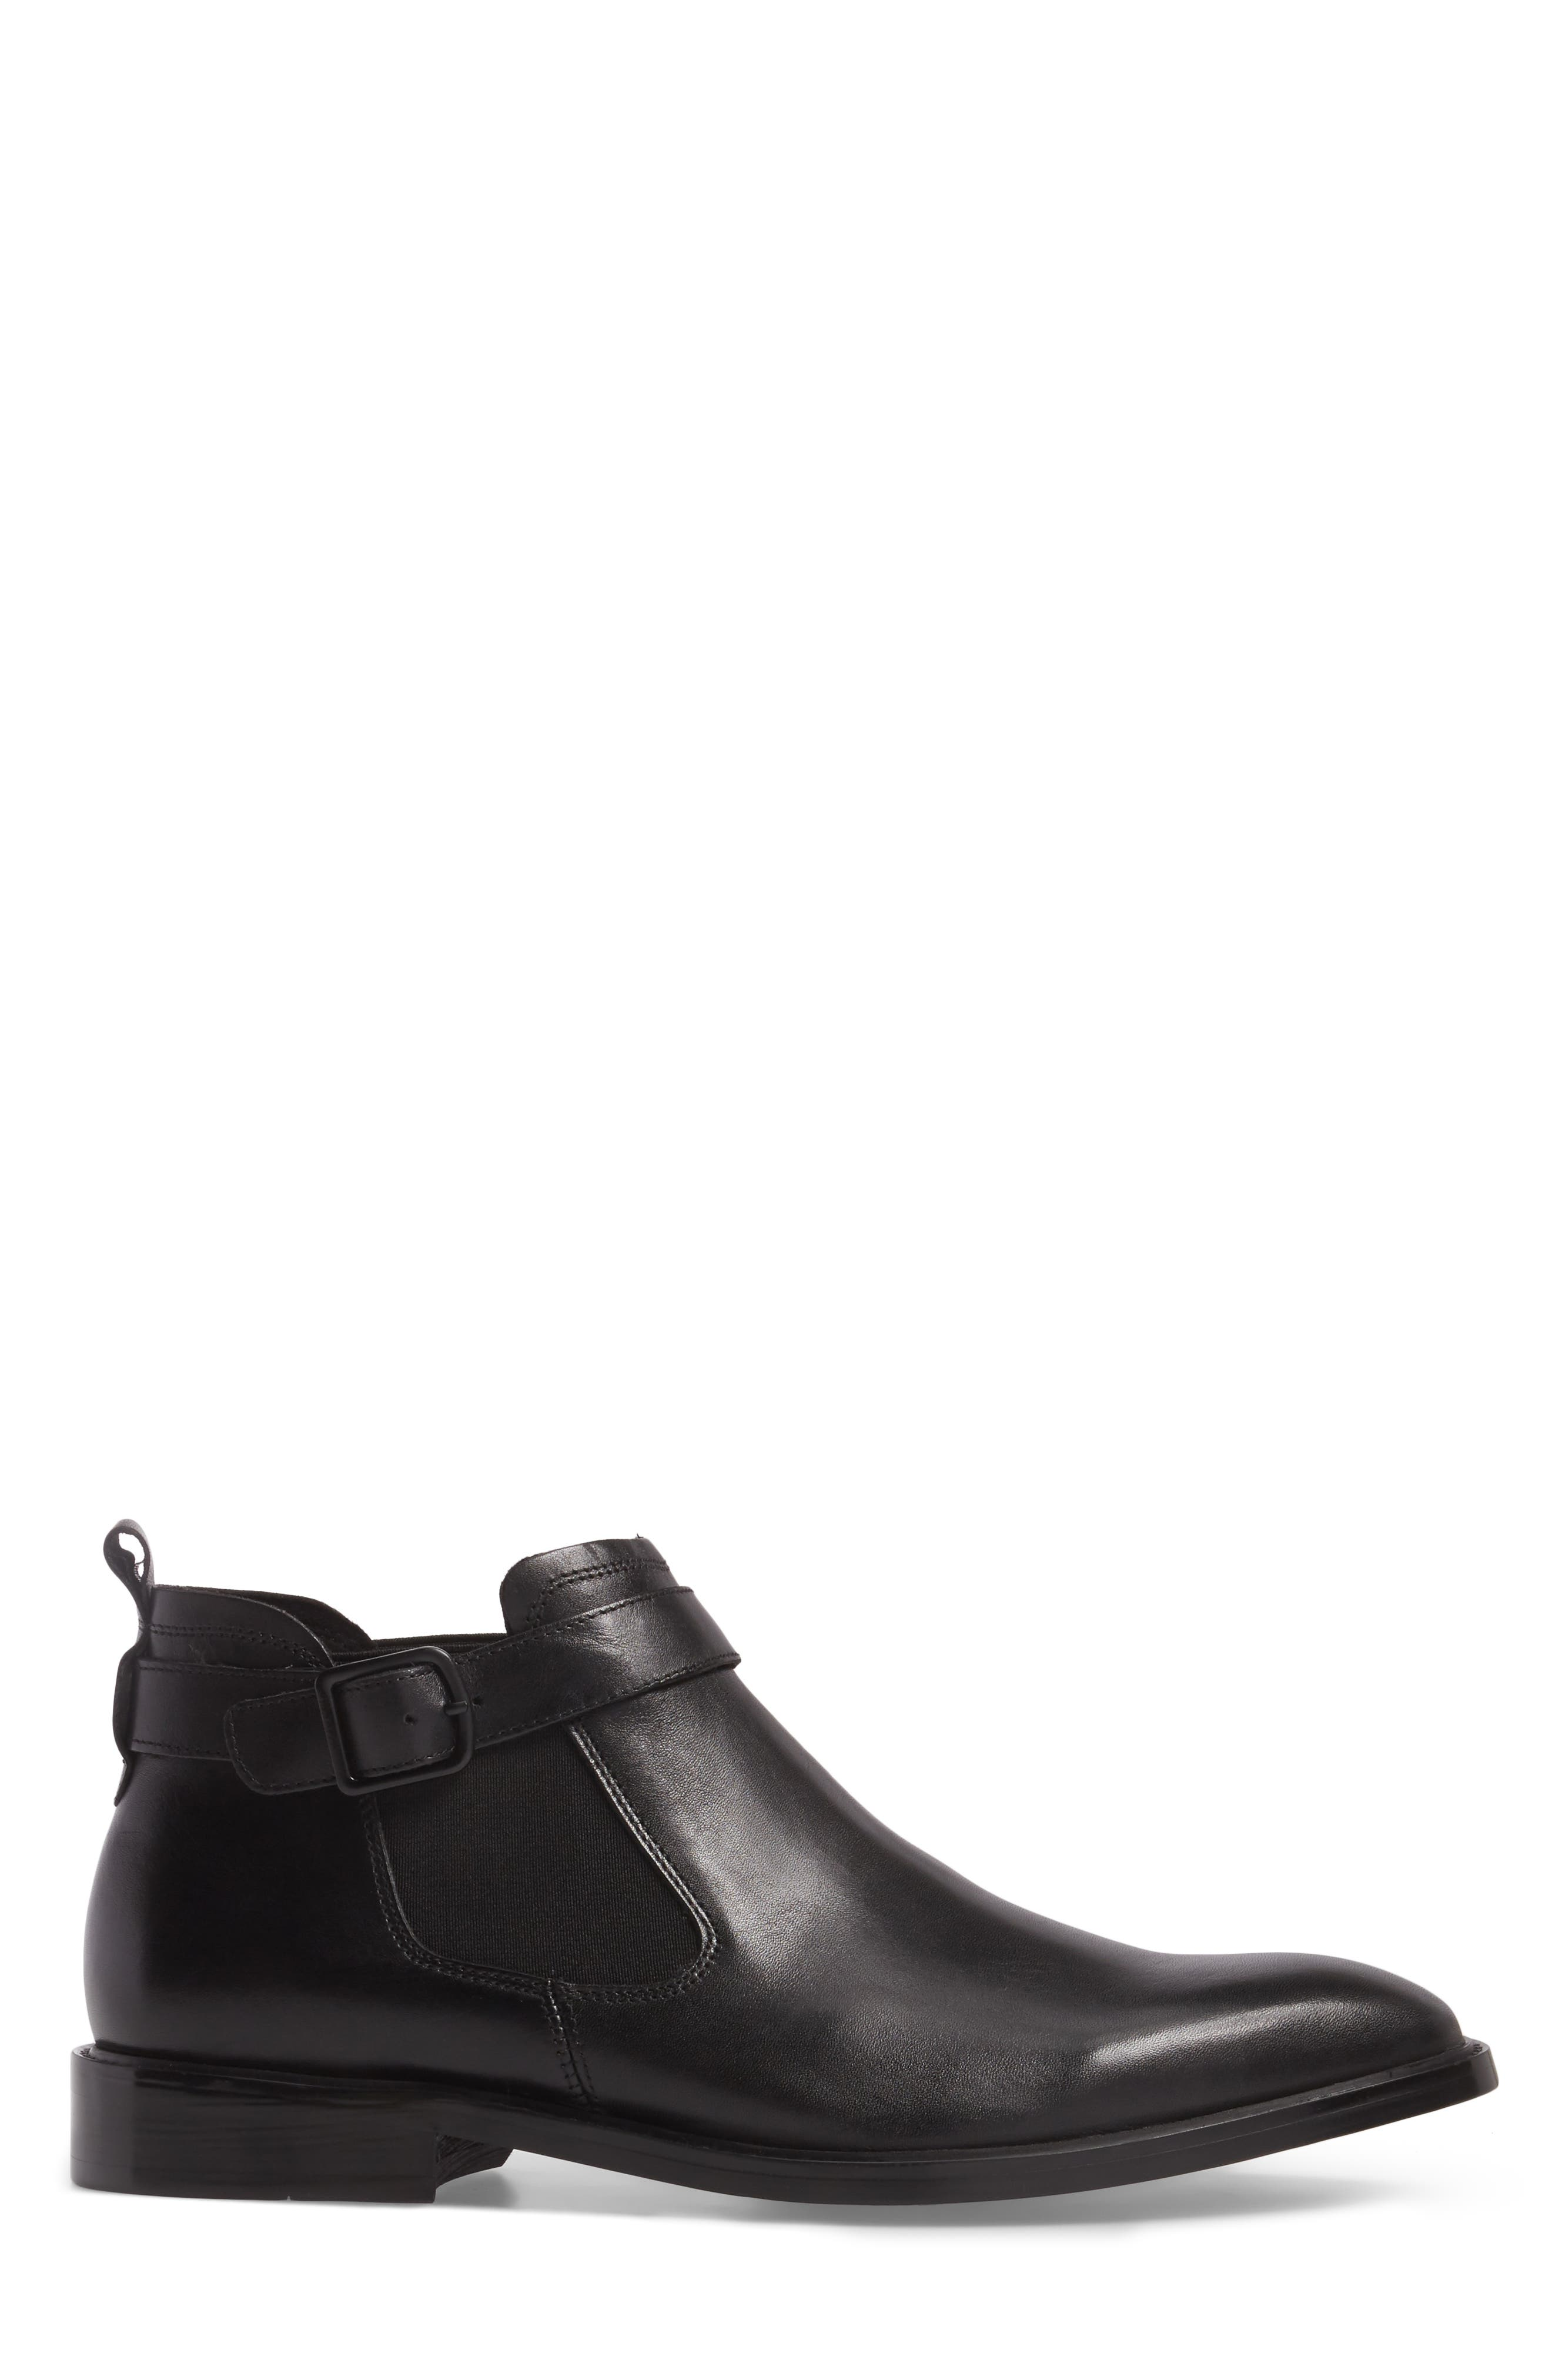 'Sum-Times' Chelsea Boot,                             Alternate thumbnail 3, color,                             001